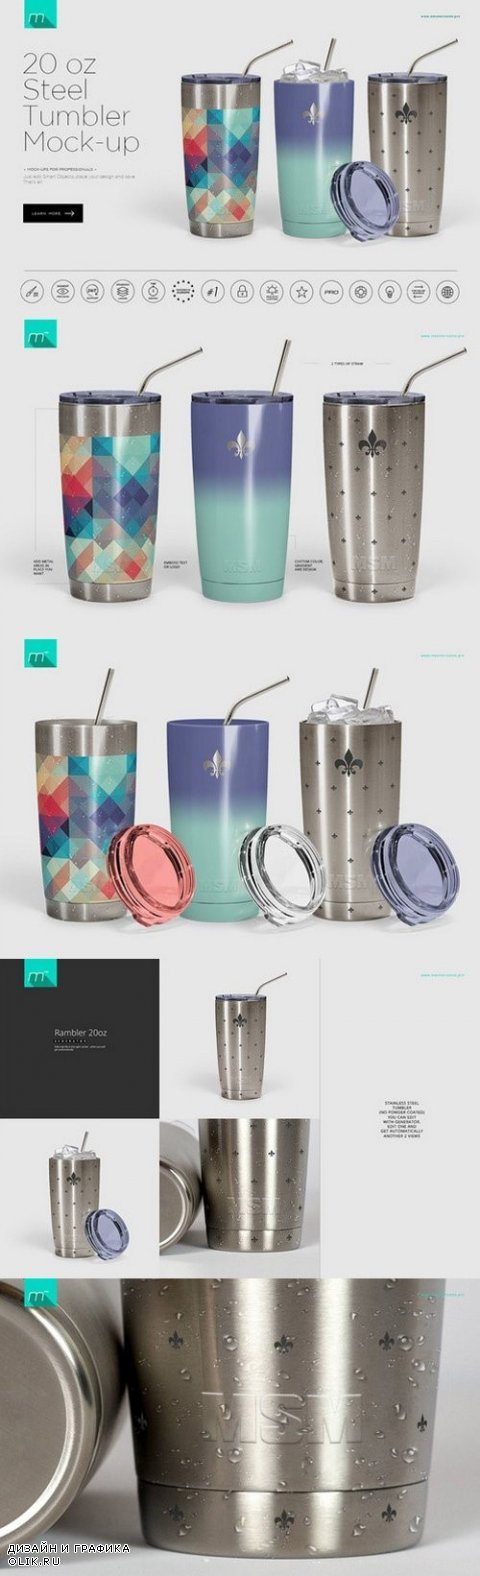 20 oz Stainless Tumbler Mock-up - 863725